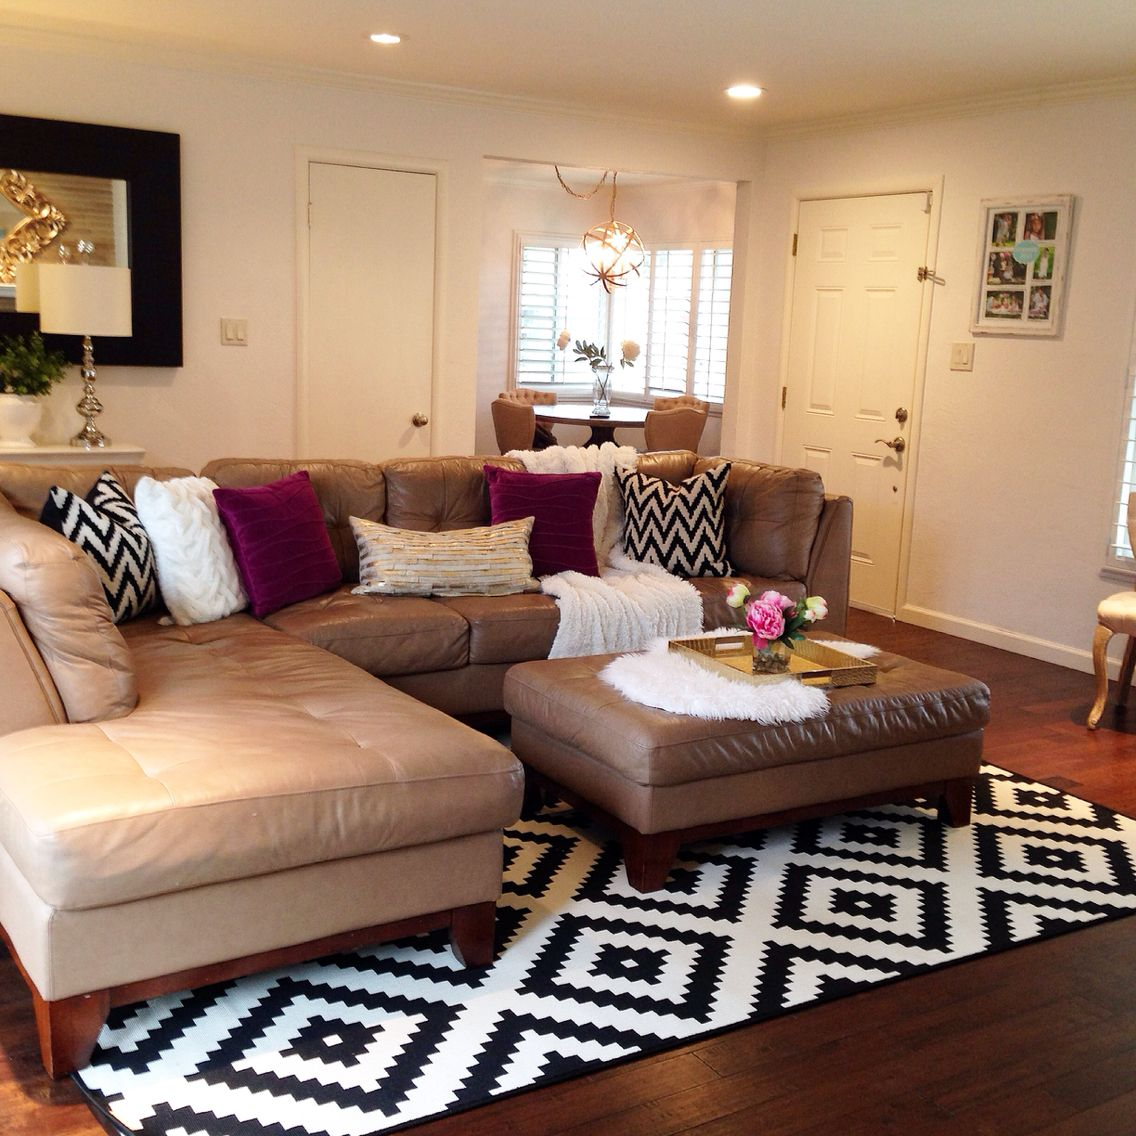 Black And White Area Rug In The Living Room Pops Of Fuschia Too Sectional Sofa Living Room Colors Brown Living